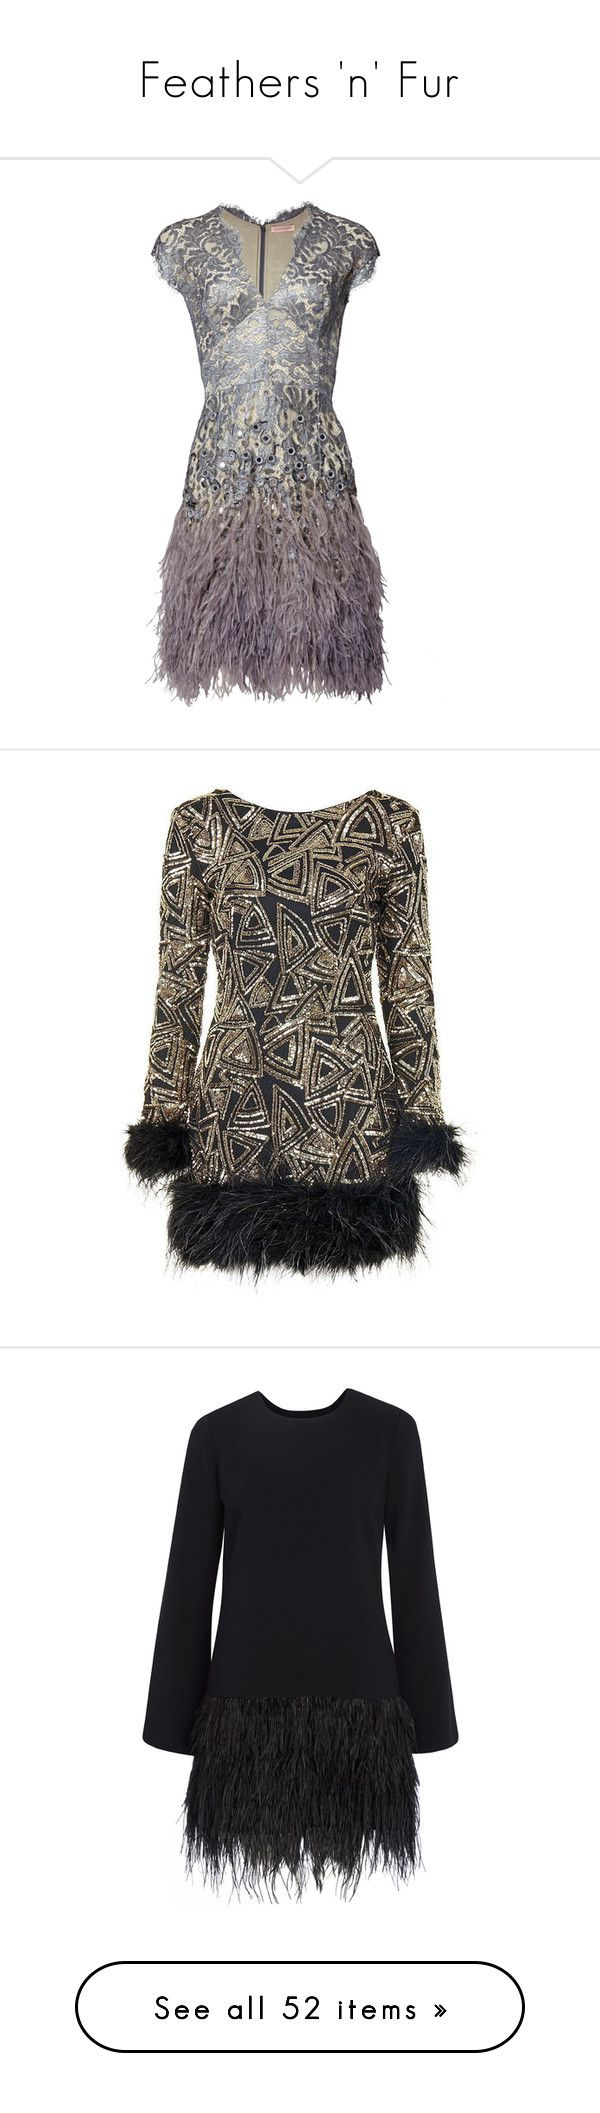 """""""Feathers 'n' Fur"""" by stardustnf ❤ liked on Polyvore featuring dresses, embroidered dress, white lace dress, white lace cocktail dress, lace cocktail dress, white dress, long sleeve black cocktail dress, long sleeve sequin dress, black mini dress and long sleeve sequin cocktail dress"""